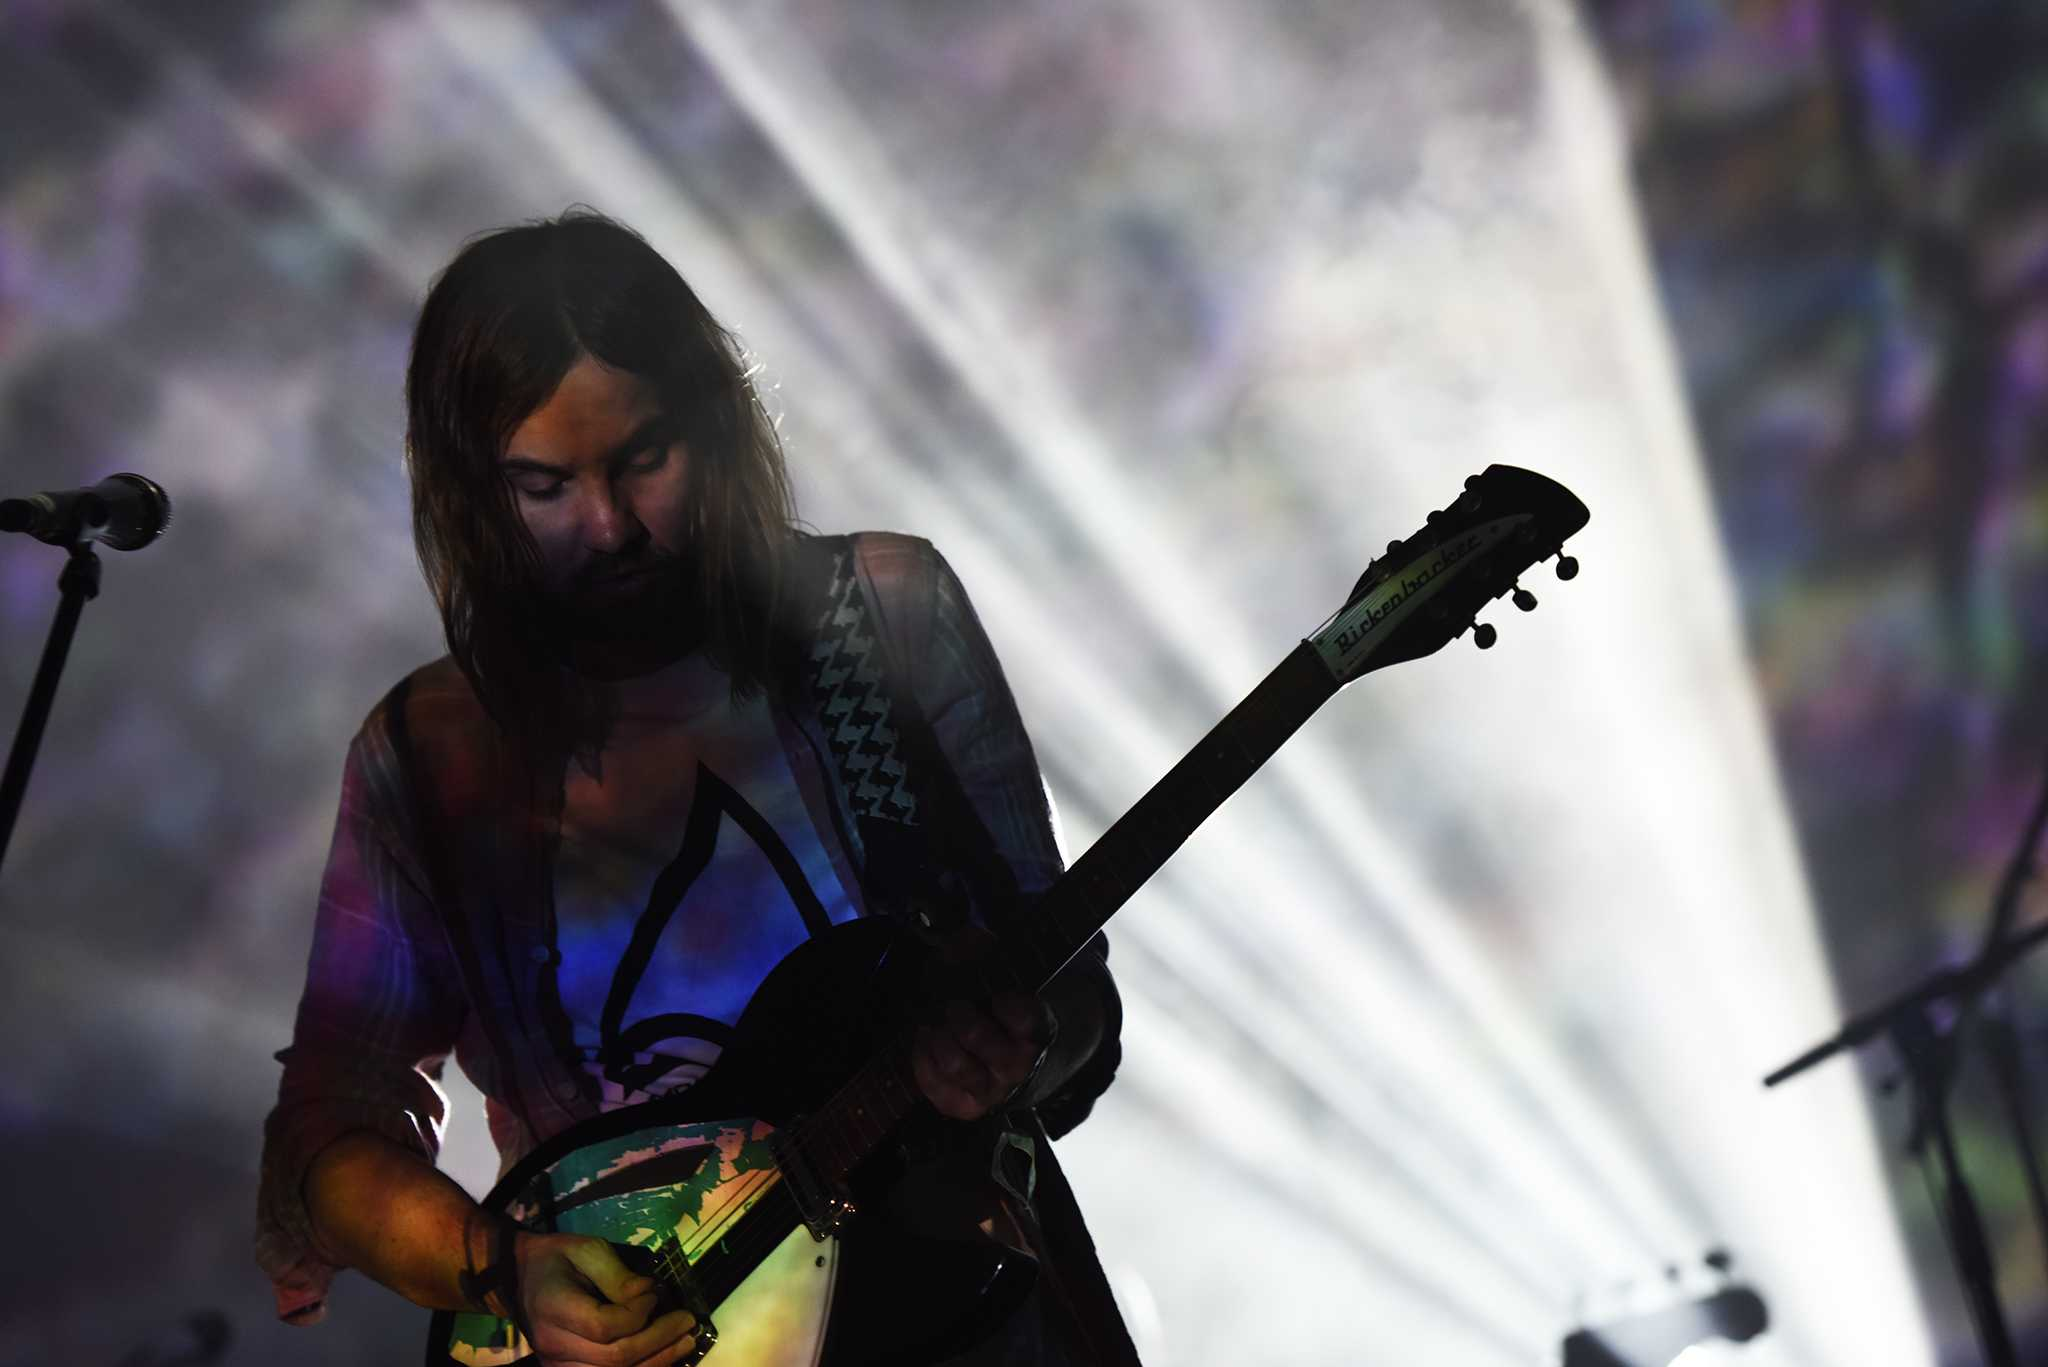 Tame Impala at Main Stage by Everett Fitzpatrick for FYF Fest